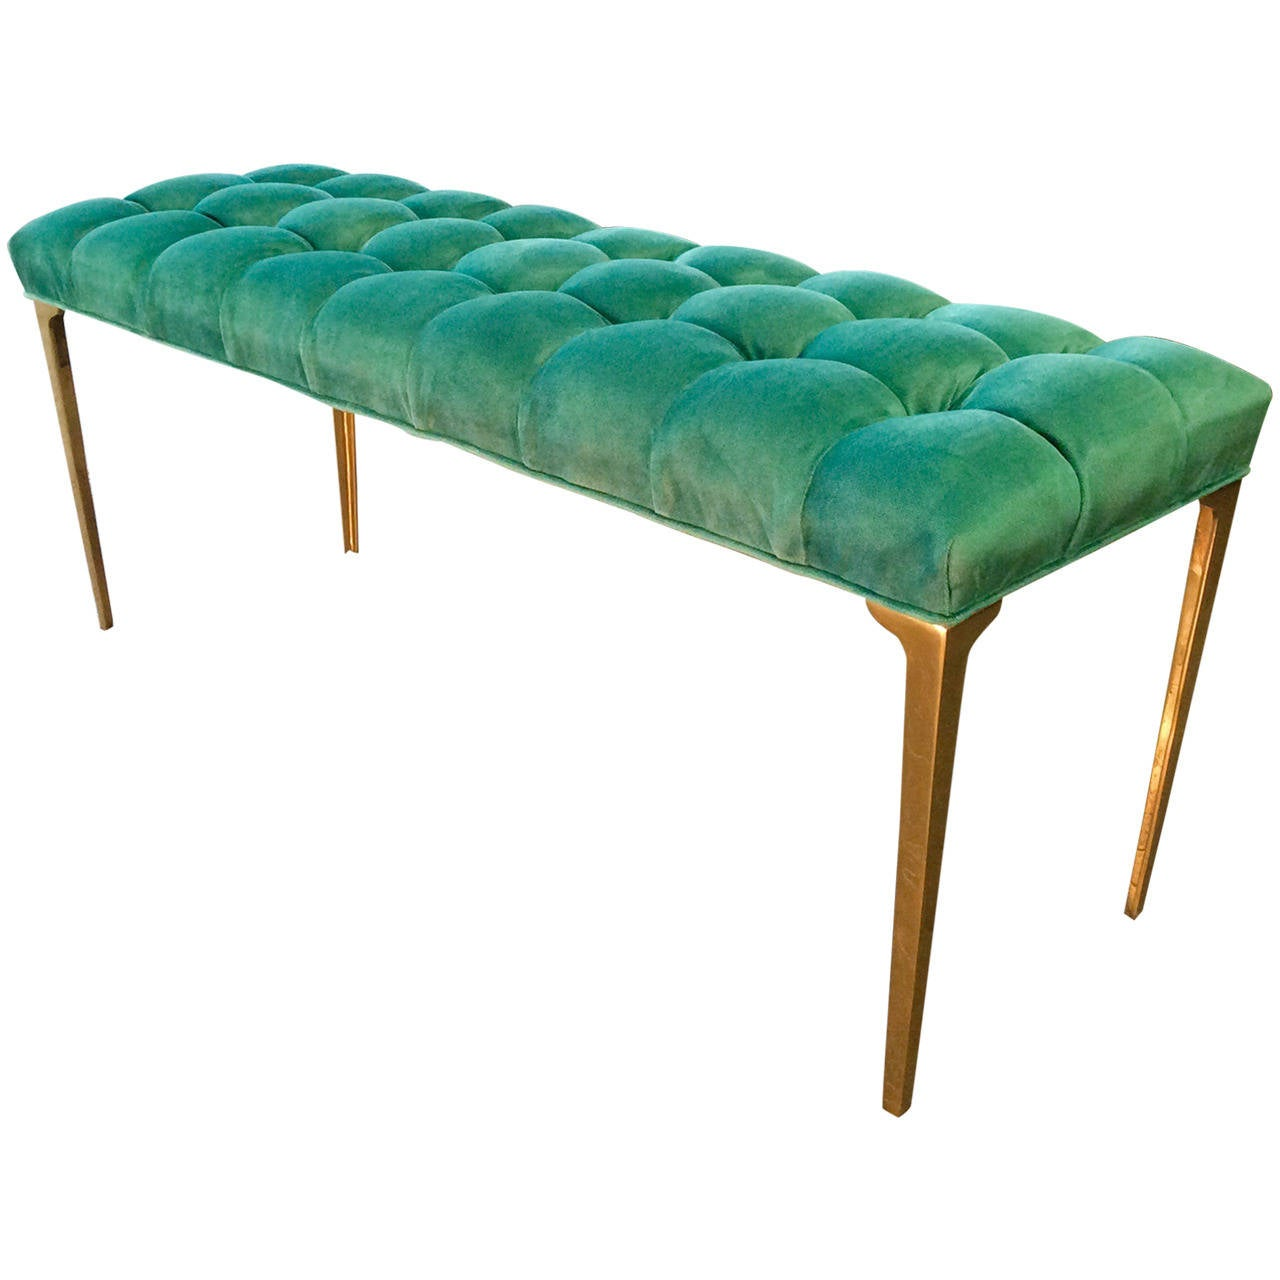 Custom Made Long Bench In Tufted Teal Velvet With Brass